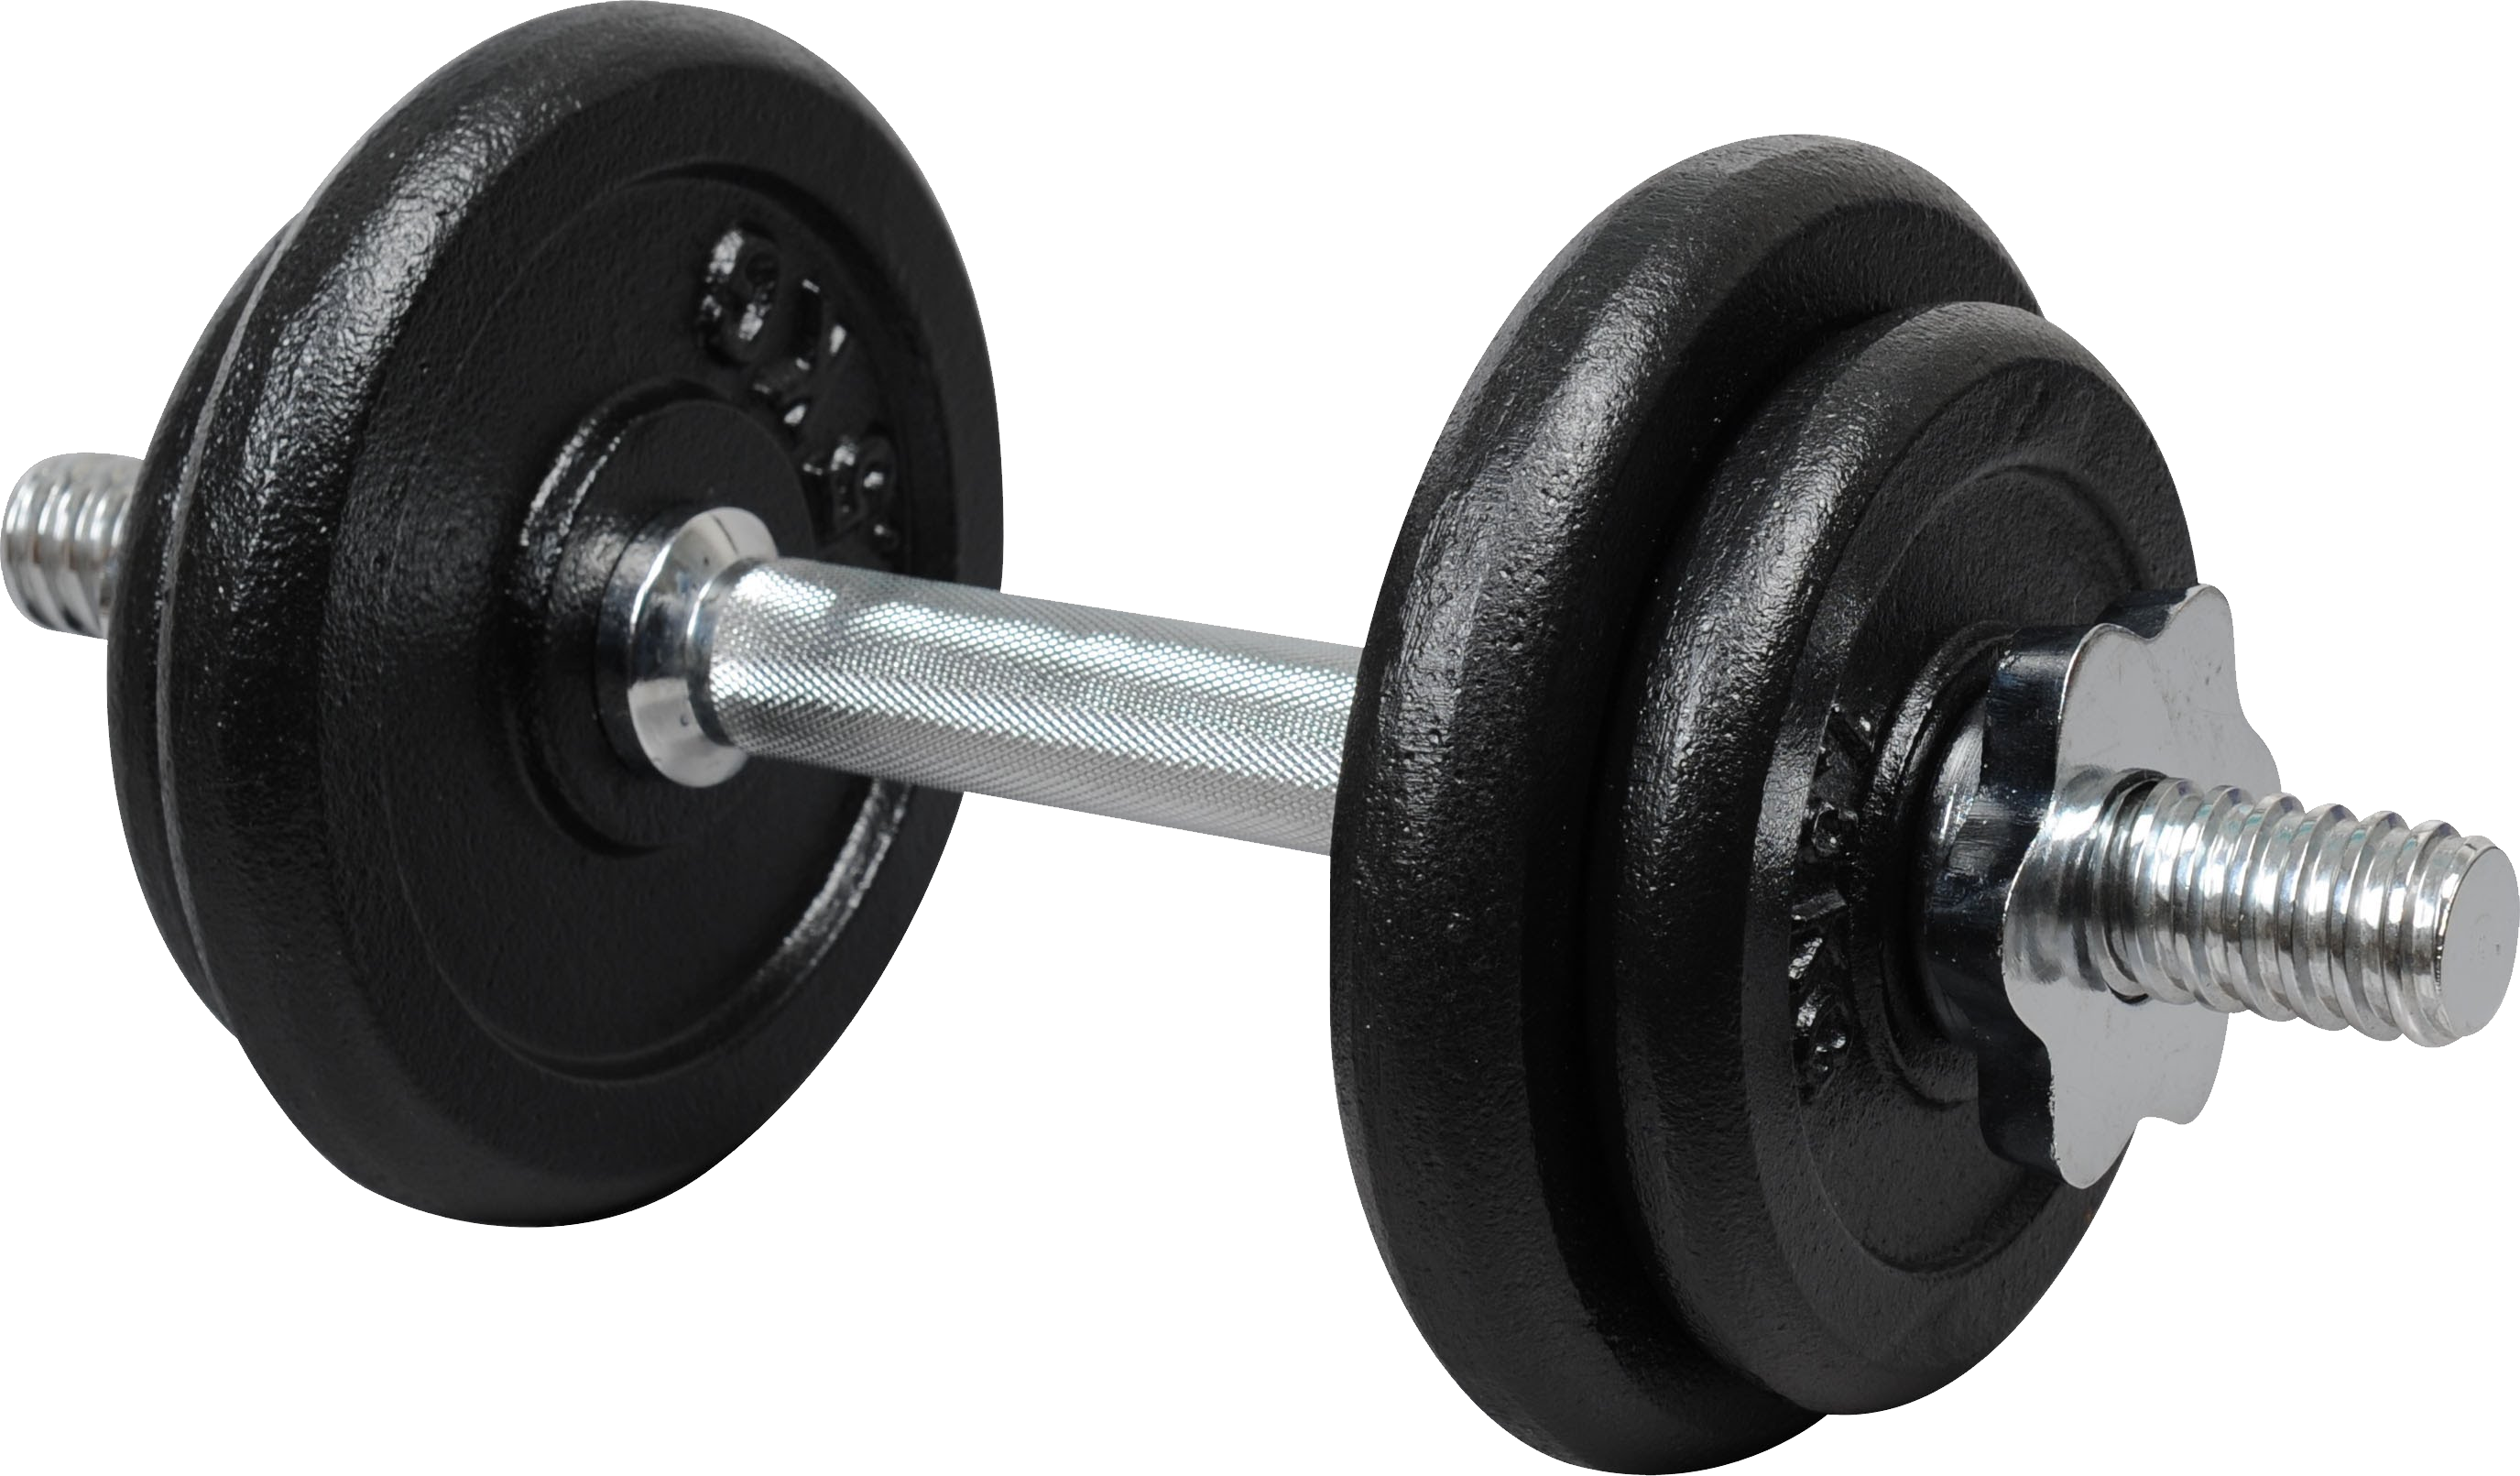 Dumbbell clipart transparent background. Dumbbells png images free